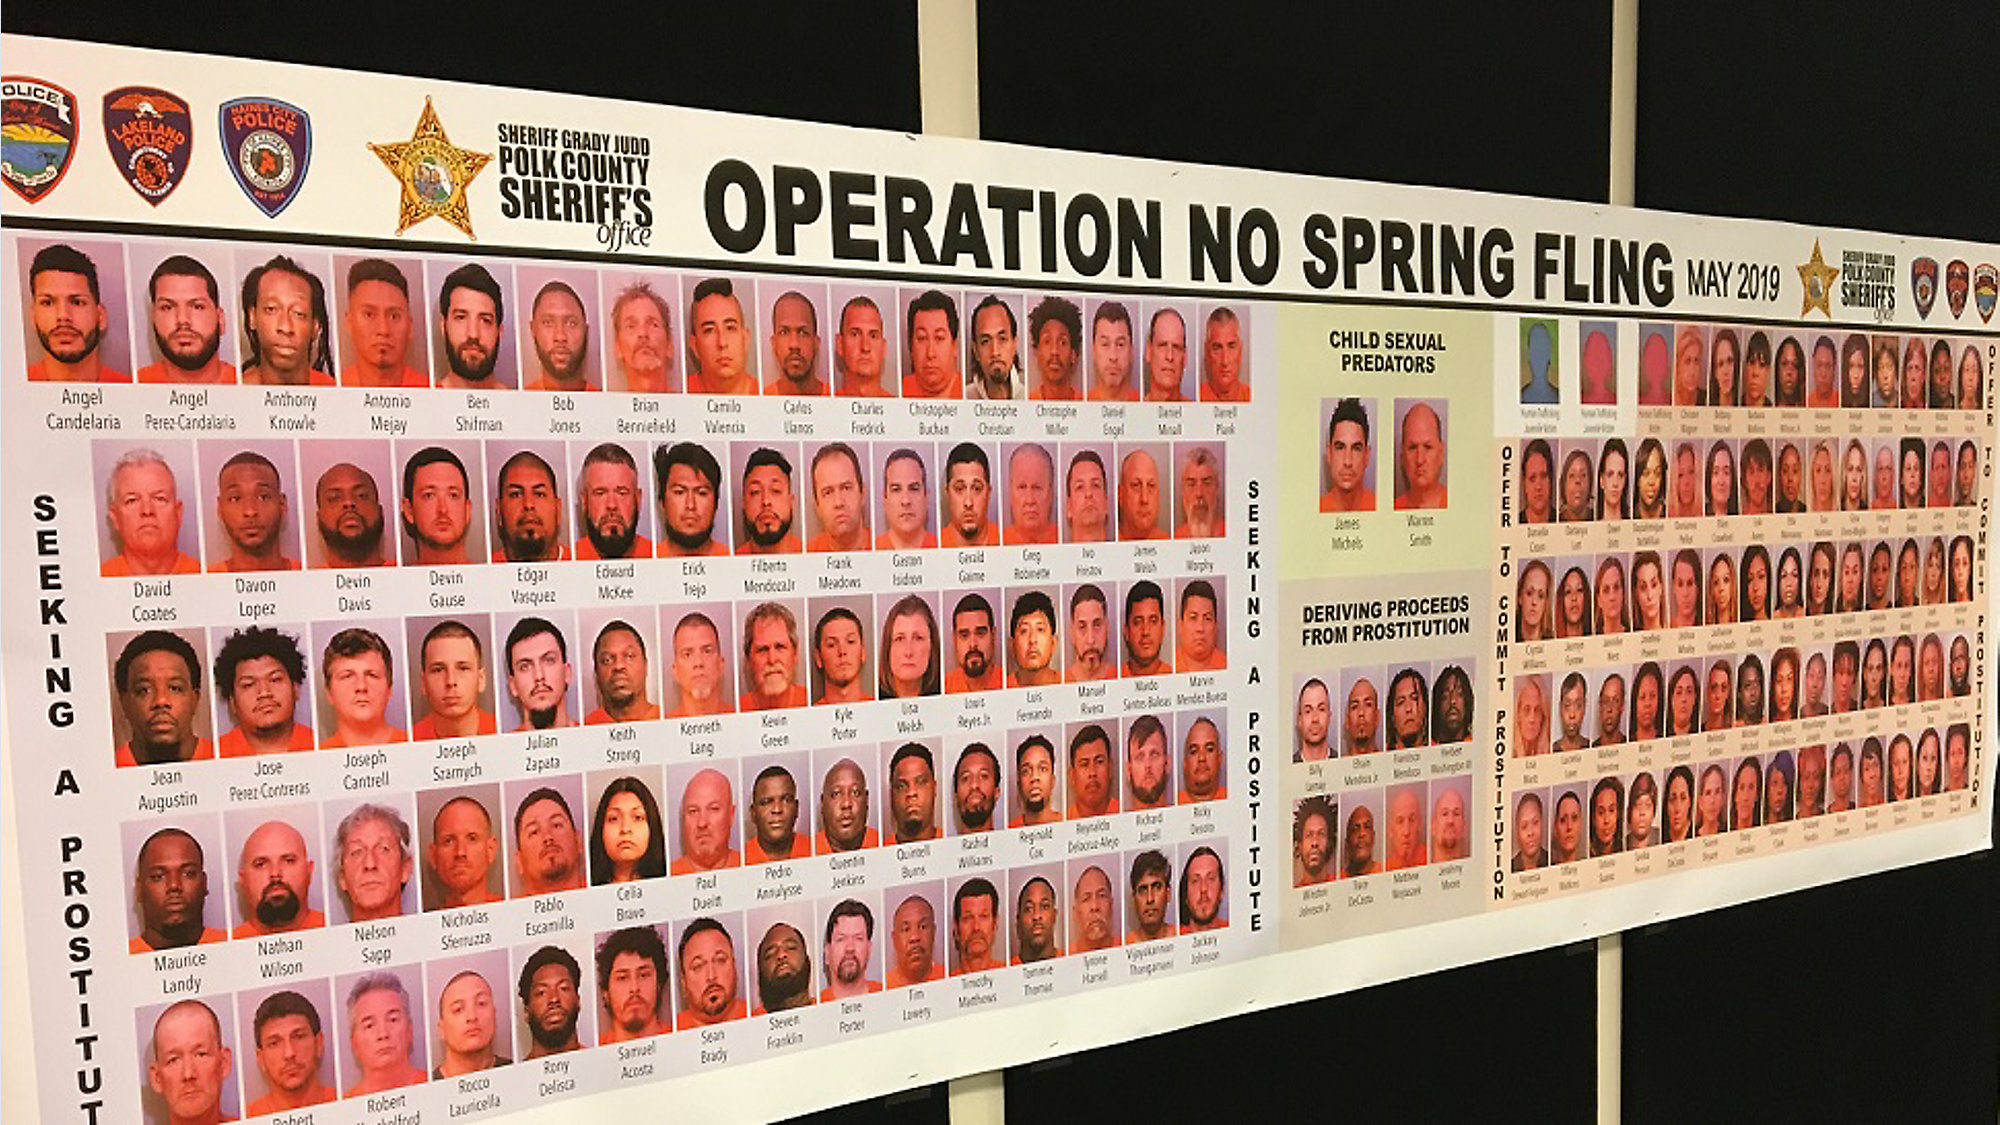 154 Arrests Made in Undercover Prostitution Sting in Polk